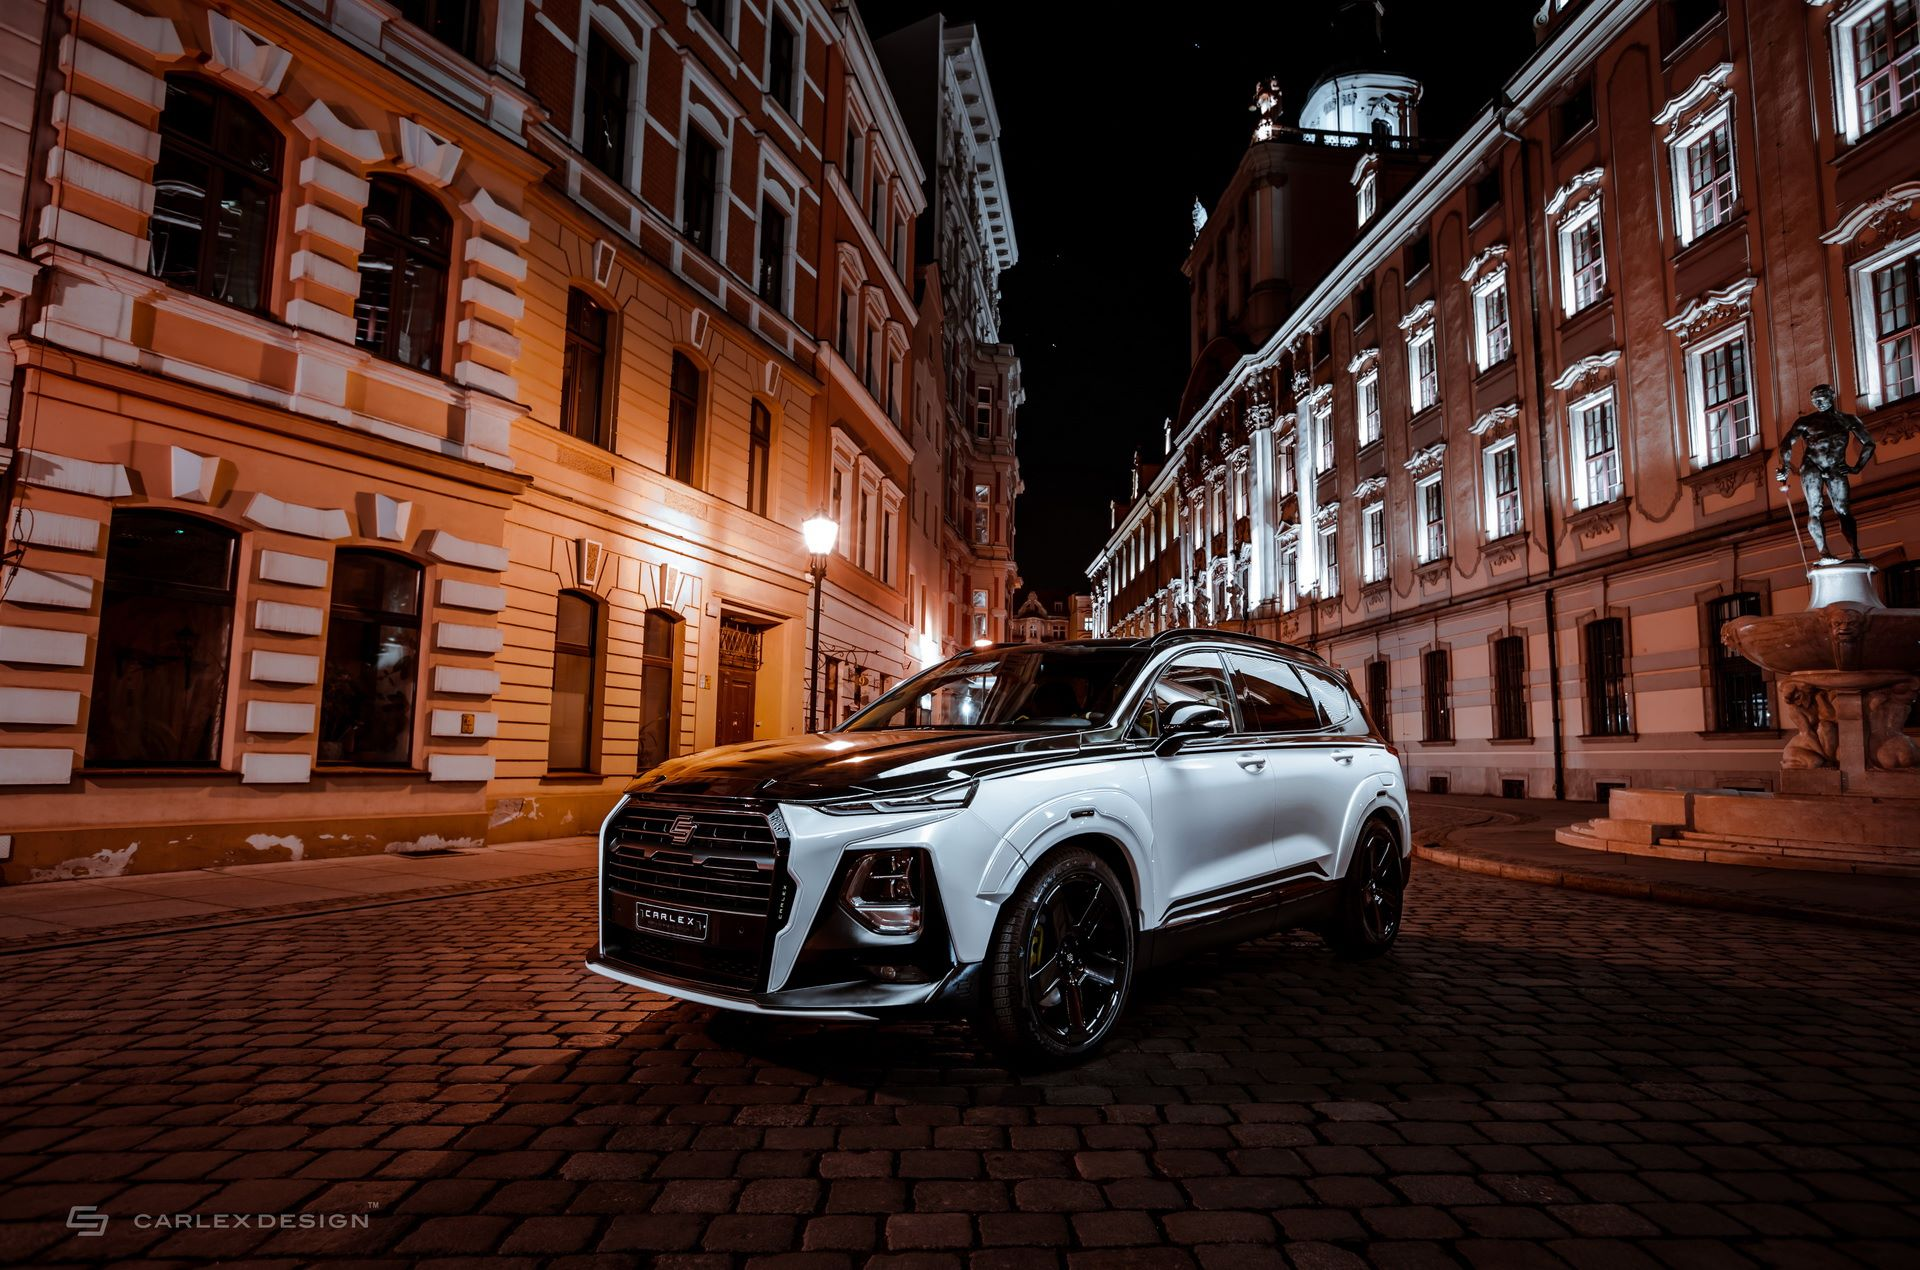 Hyundai-Santa-Fe-Urban-Edition-by-Carlex-Design-8